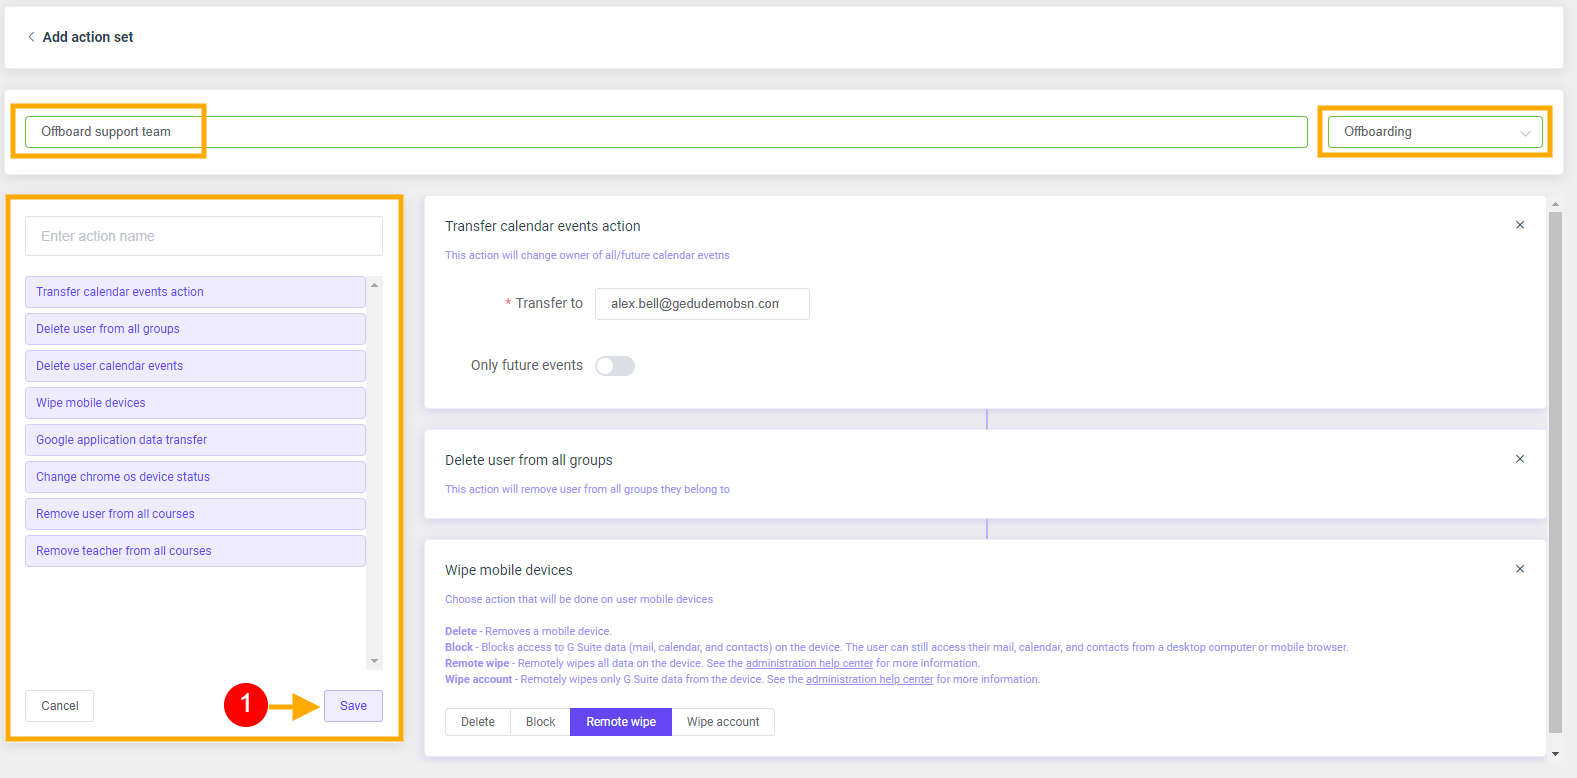 GAT Flow: Create an action set for Offboarding G Suite users 5